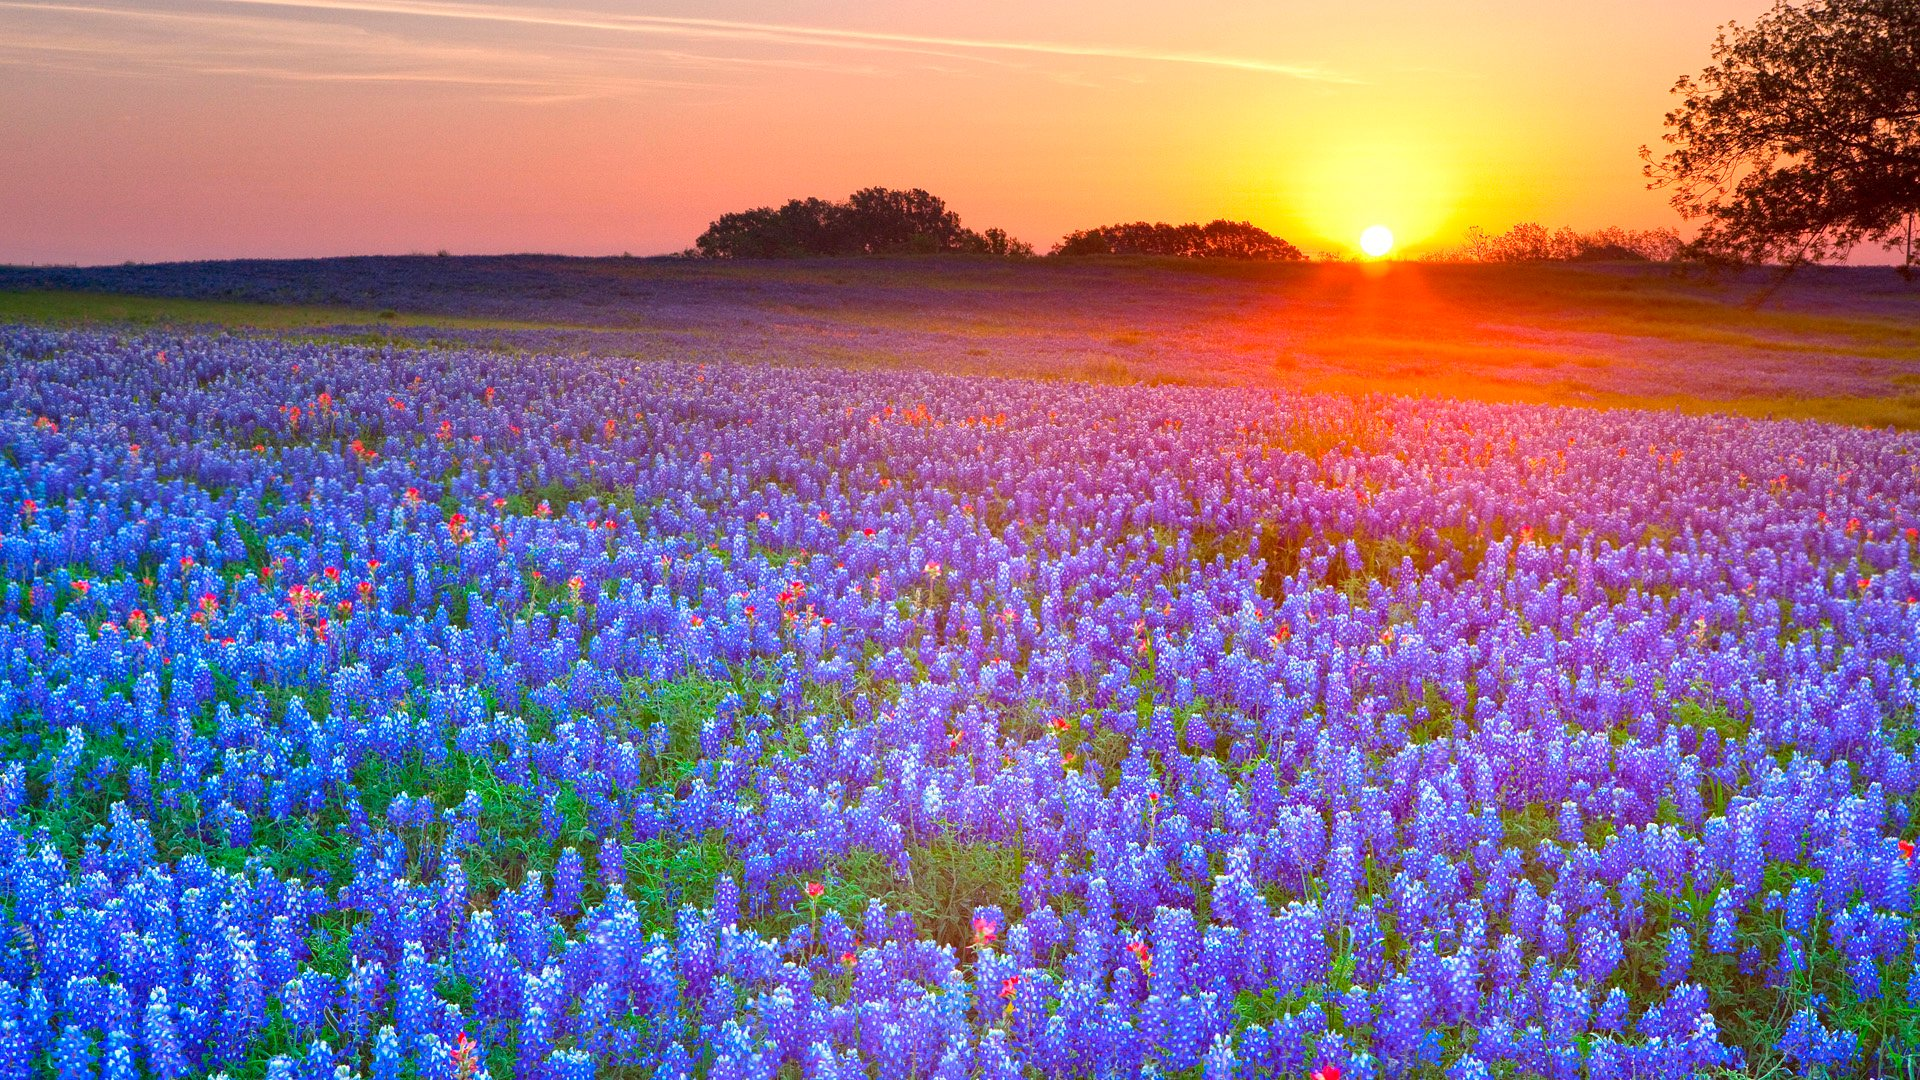 Bluebonnets Texas Hill Country Texas Computer Wallpapers Desktop 1920x1080